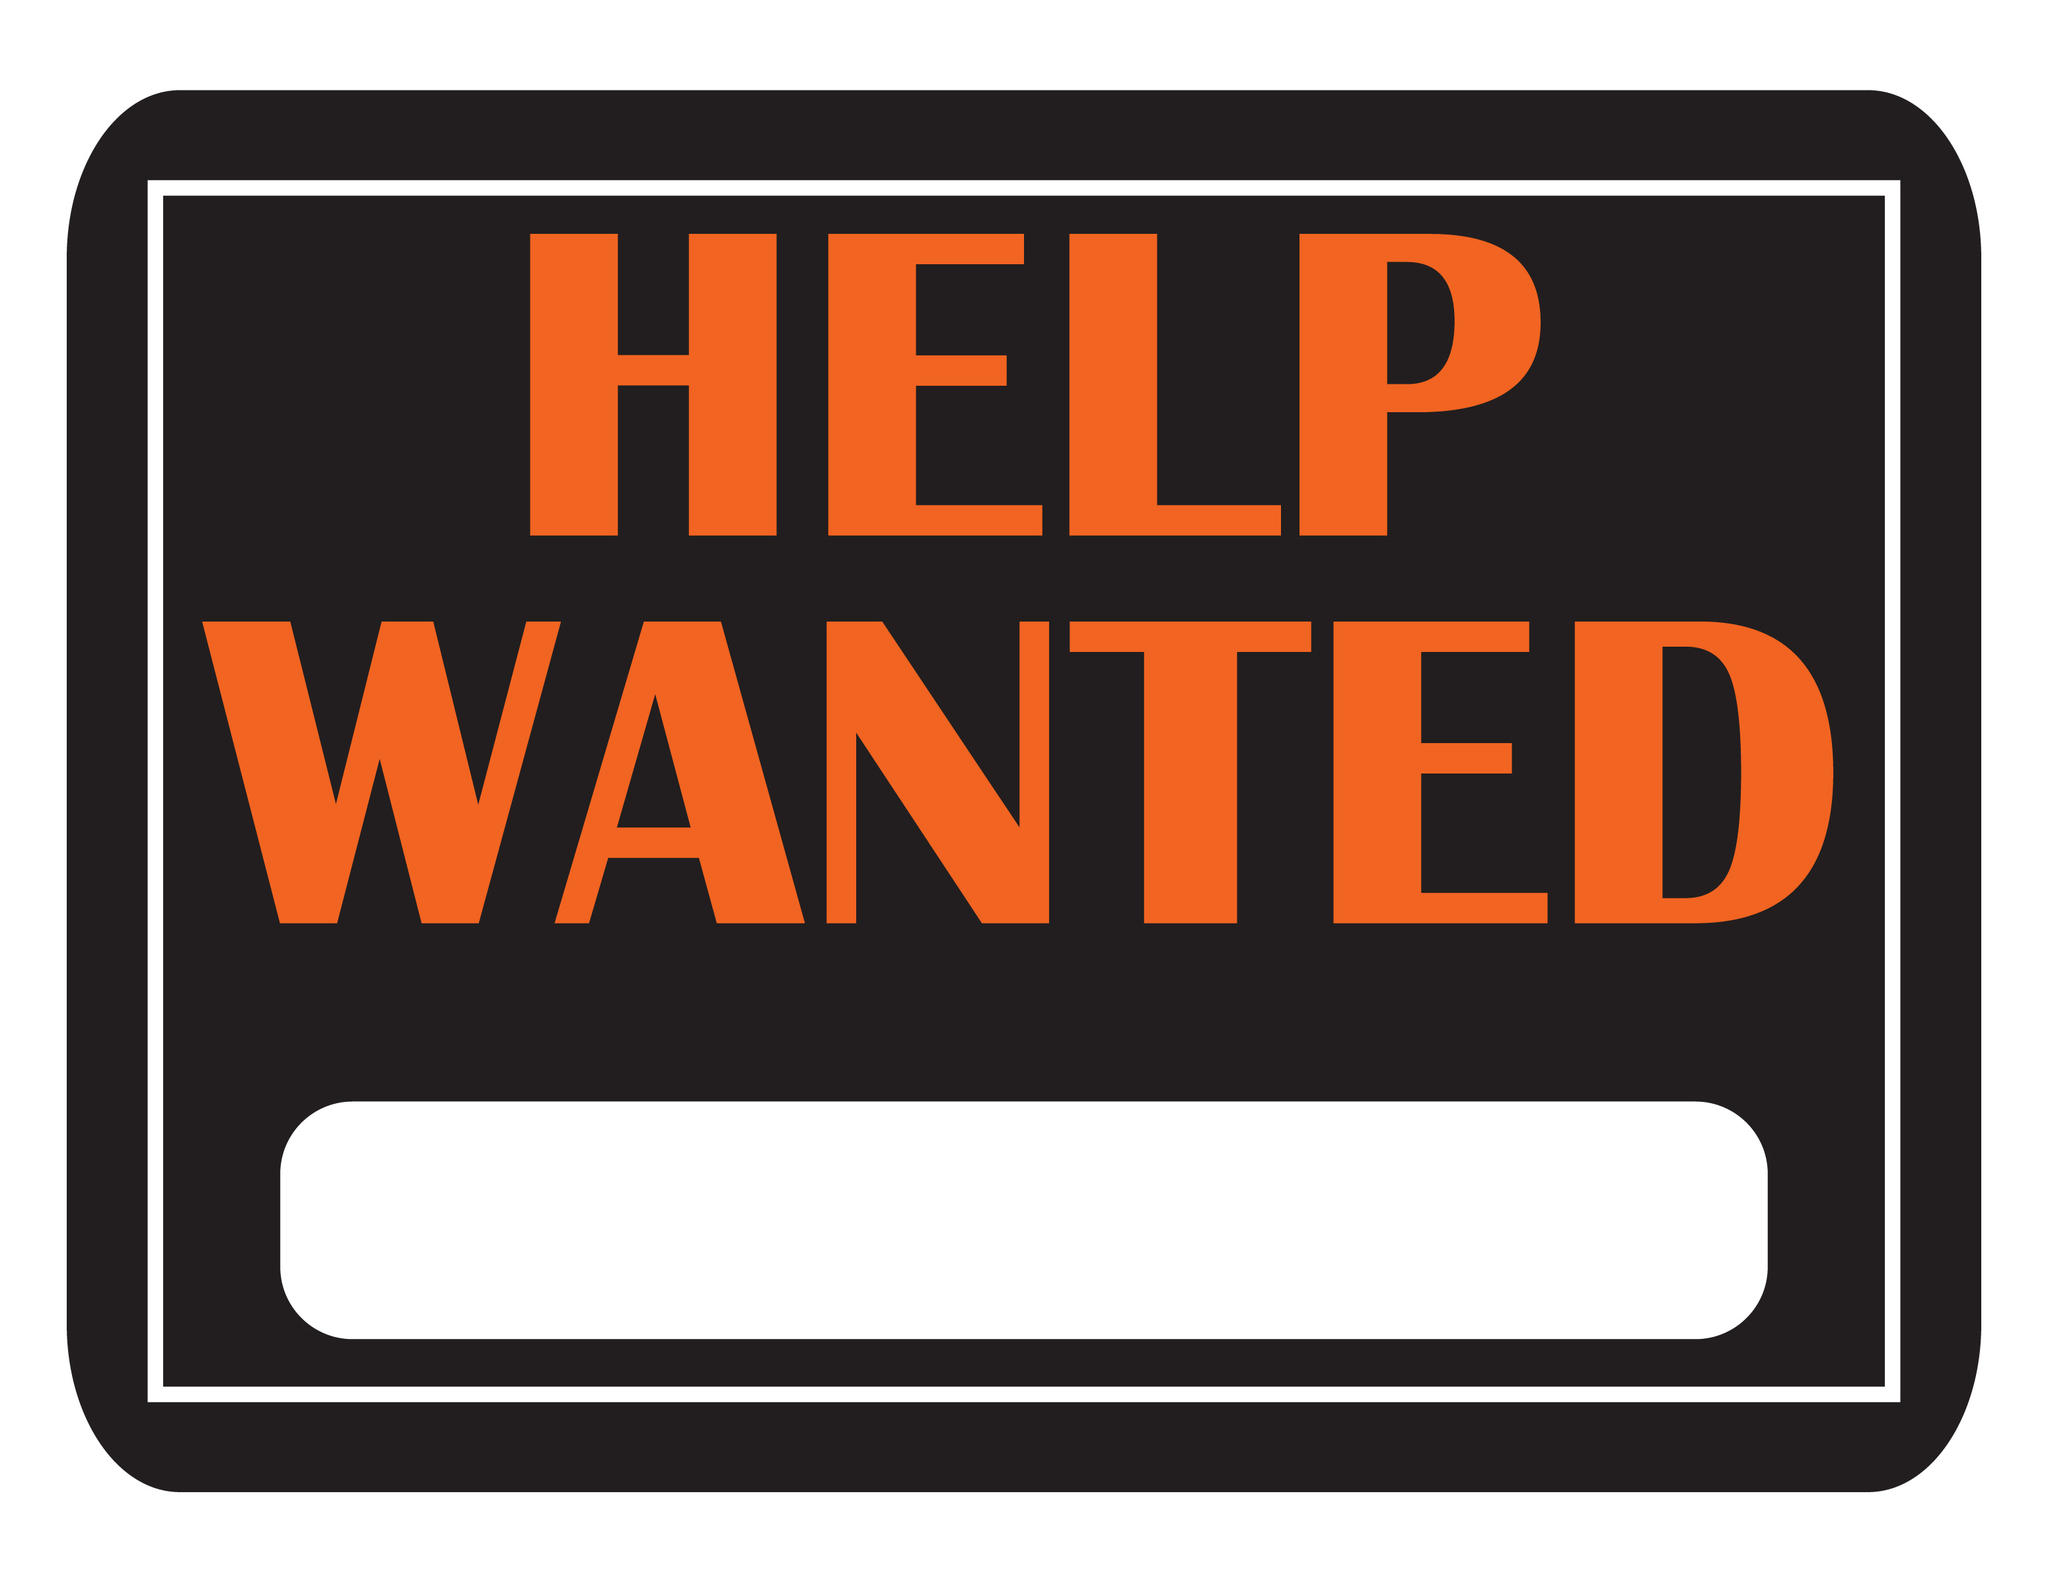 Help Wanted SIgn Clipart U0026middot; «-Help Wanted SIgn Clipart u0026middot; «-19